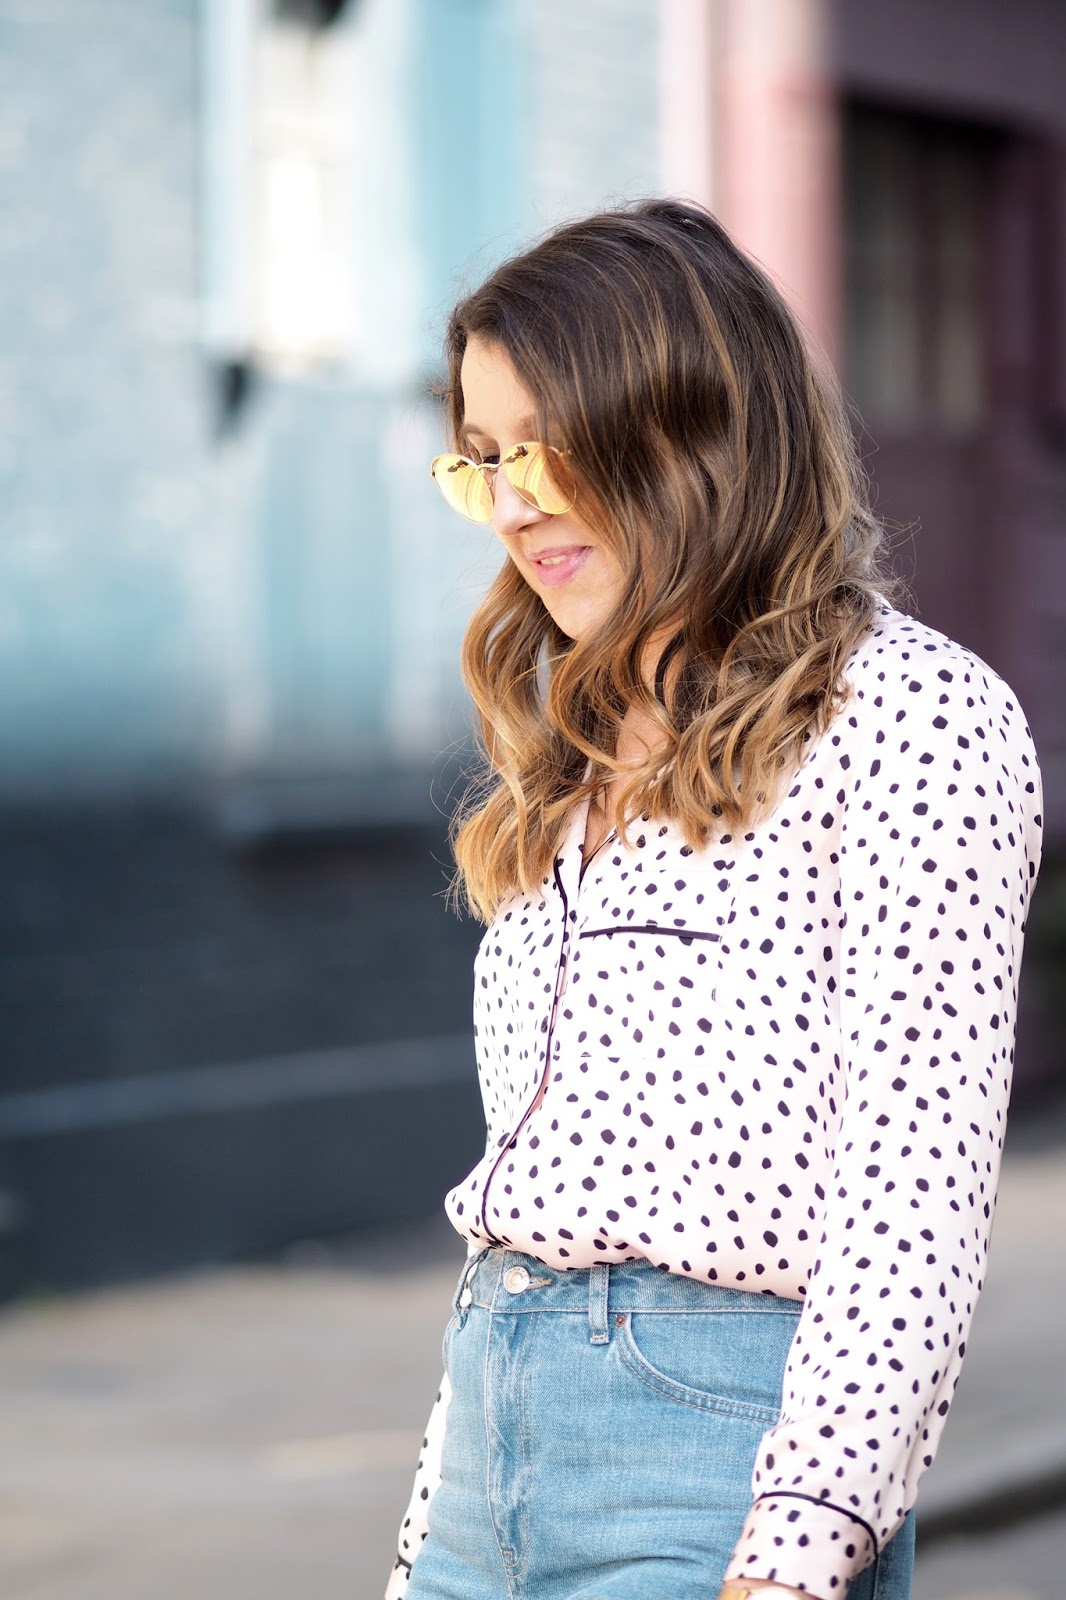 f52f7dc64f One trend that seems to have taken over the high street is pyjama dressing.  From pyjama style tops to loose fitting eyelash lace cami dresses the list  is ...